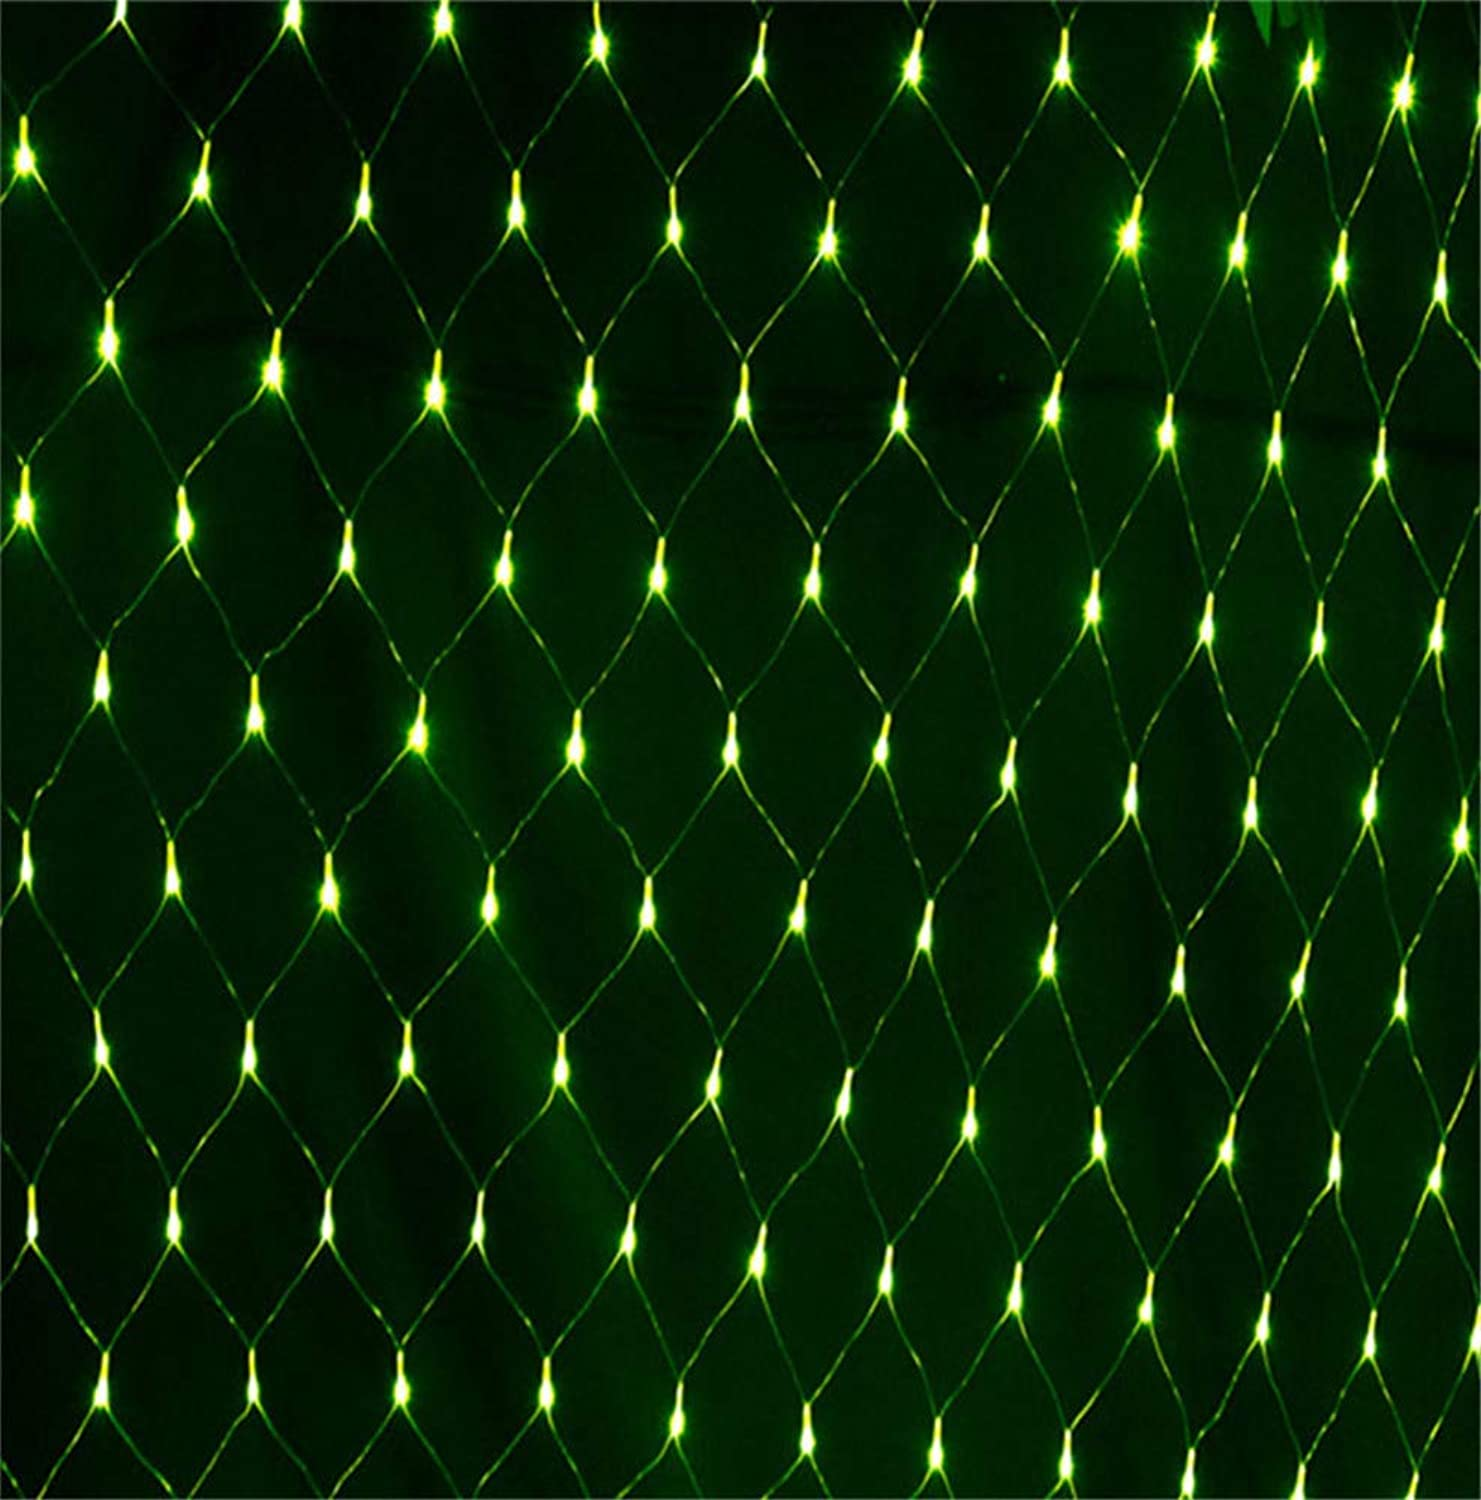 MR.MO Net Mesh Fairy Light, Weihnachtsgarten Wasserdichte Dekorative Lichter, Urlaub Hochzeit Mesh Hintergrundbeleuchtung, LED 6  4 M 880 Lichter, Grüne Lichter